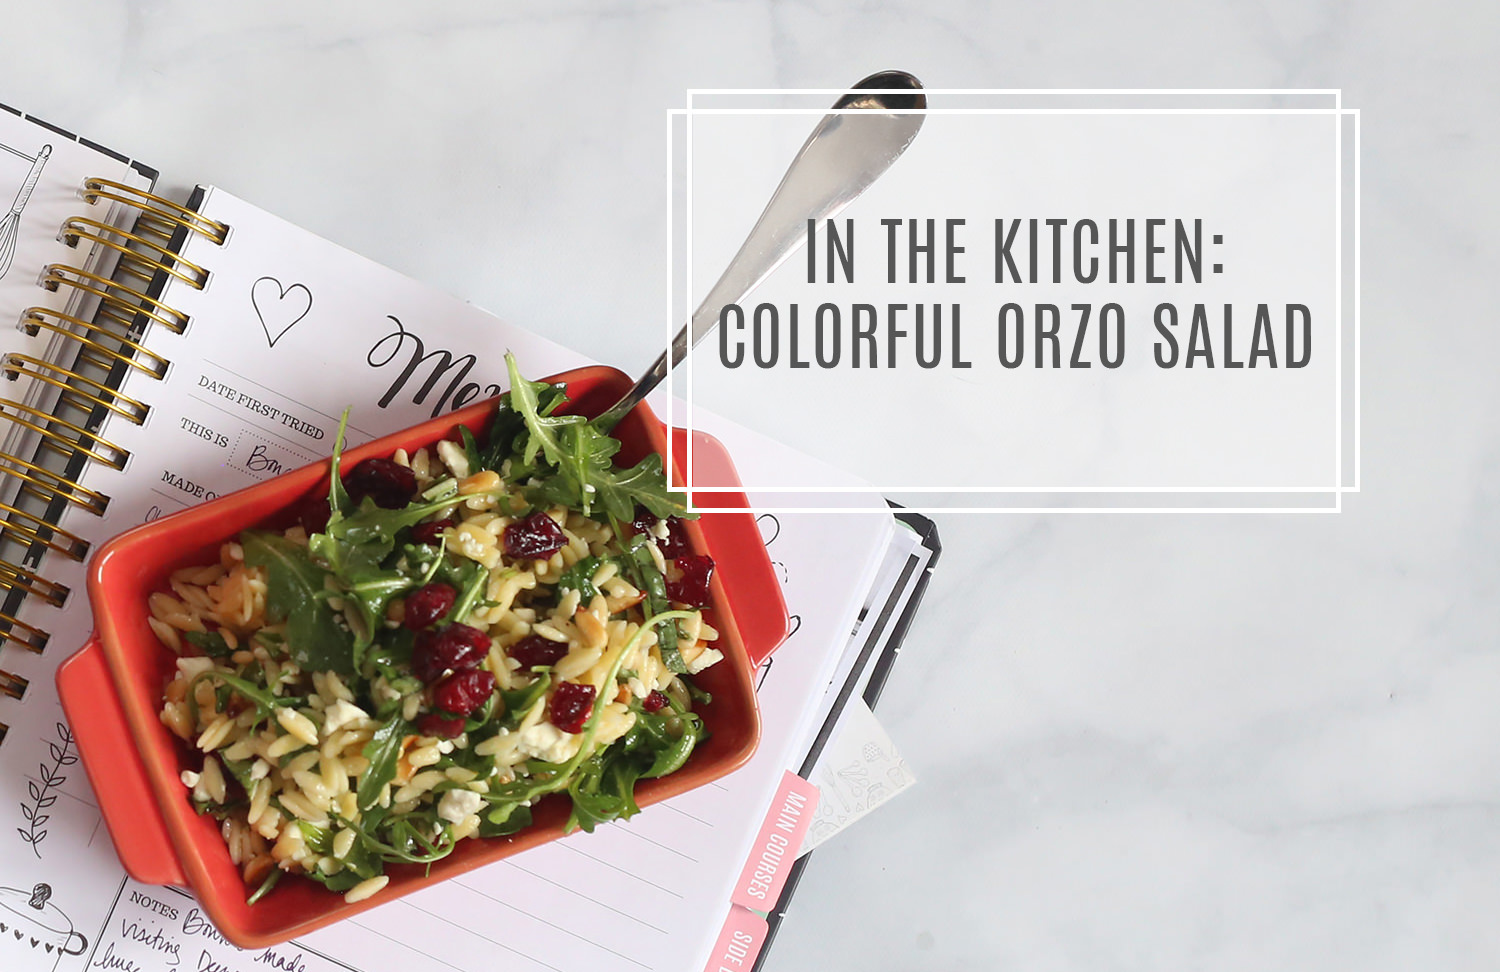 In the kitchen: a colorful orzo salad. Light and delicious, it's a healthy option for the new year!